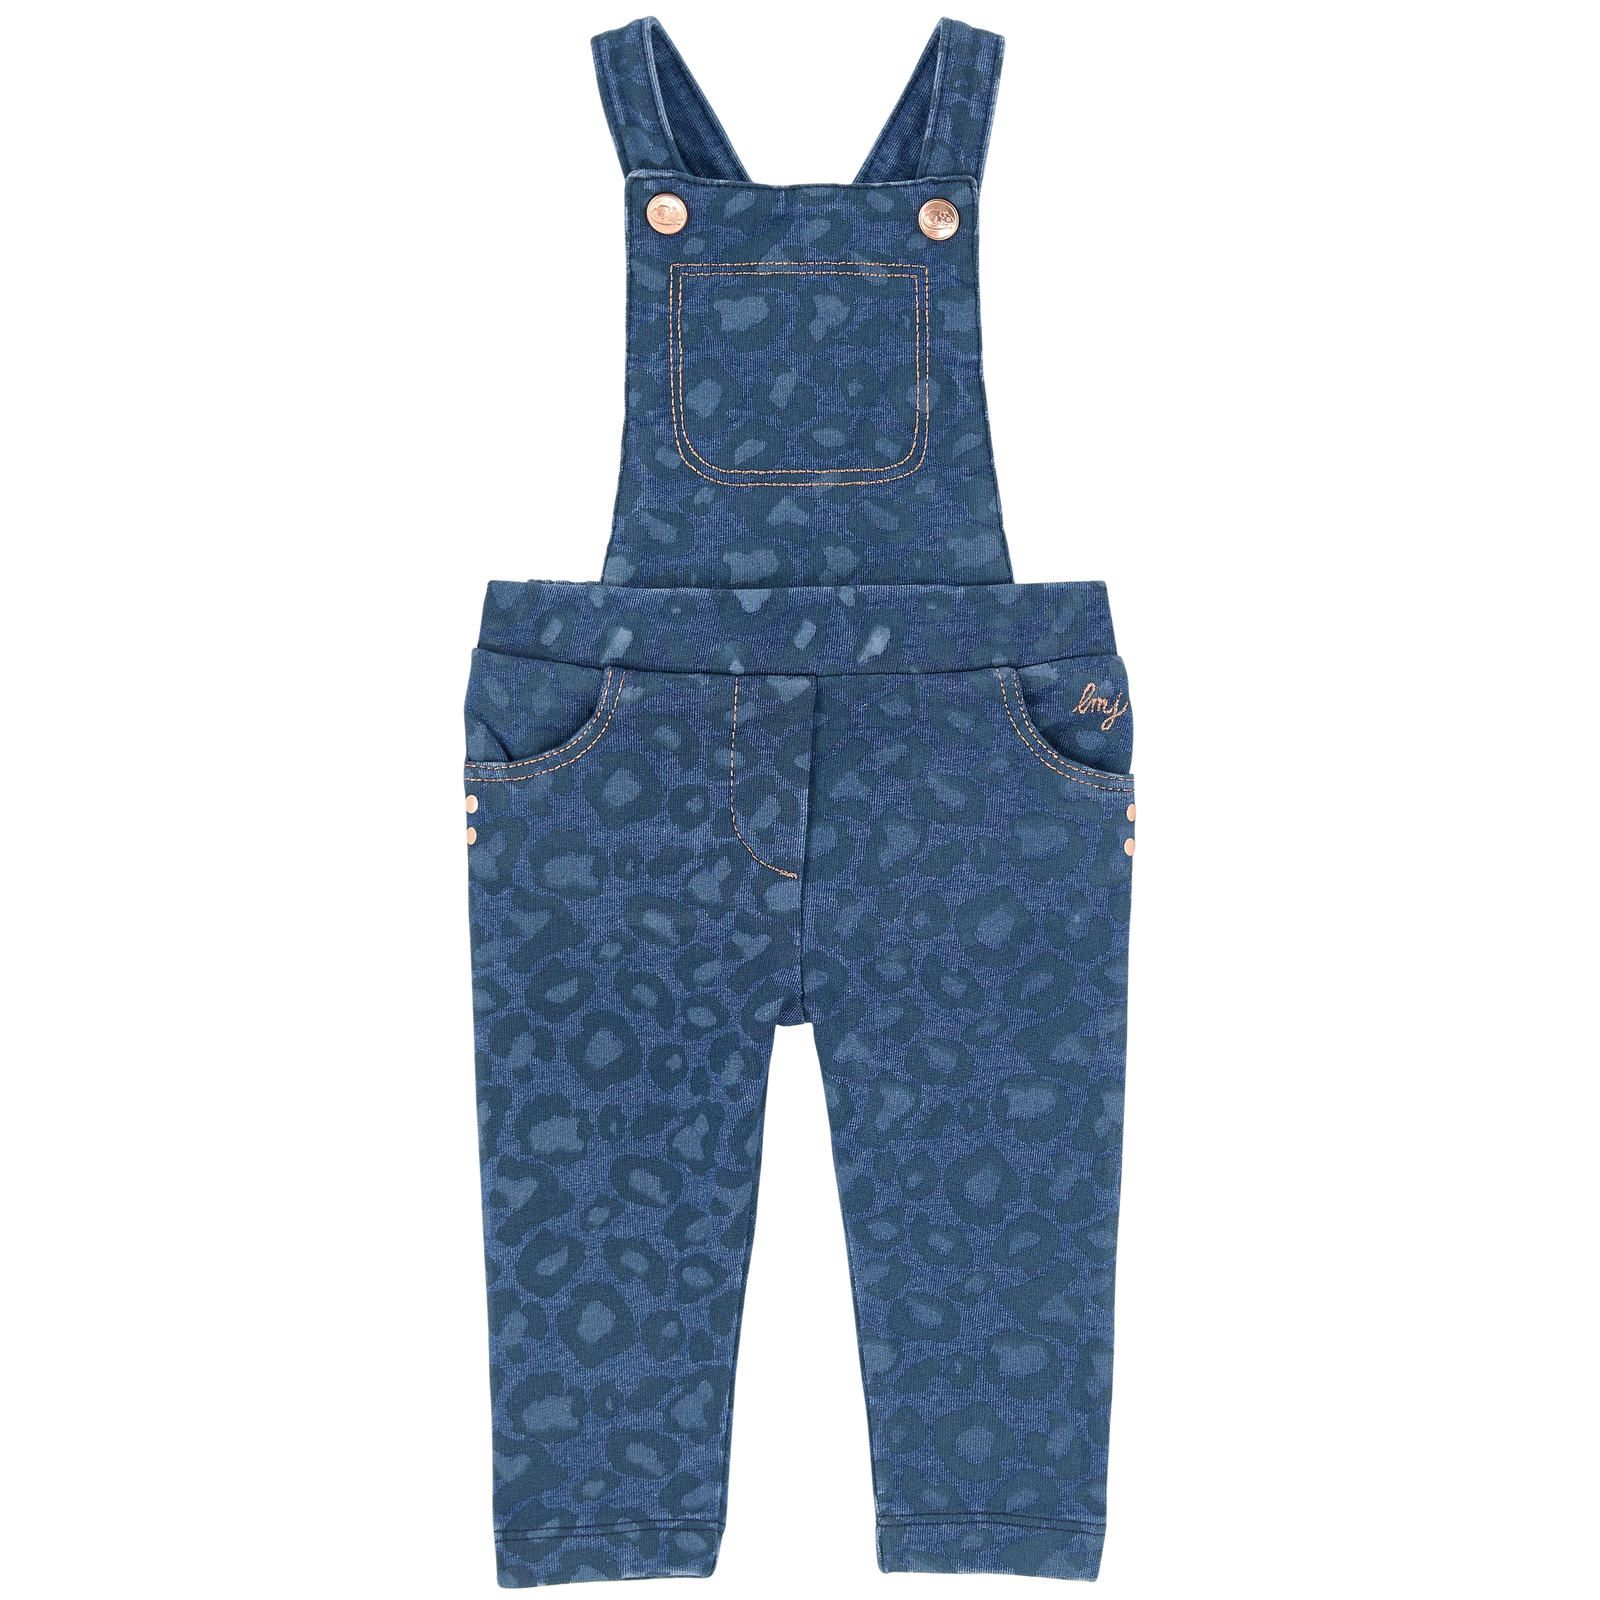 Cotton fleece    Stretch item 2 in 1 item Removable hair clip Straps on the shoulders Criss-cross straps in the back Straight fit Rounded pockets Snap straps on the chest Half-elastic waistband Lurex thread Animal print Fancy studs Embroidered brand - 137.35 €